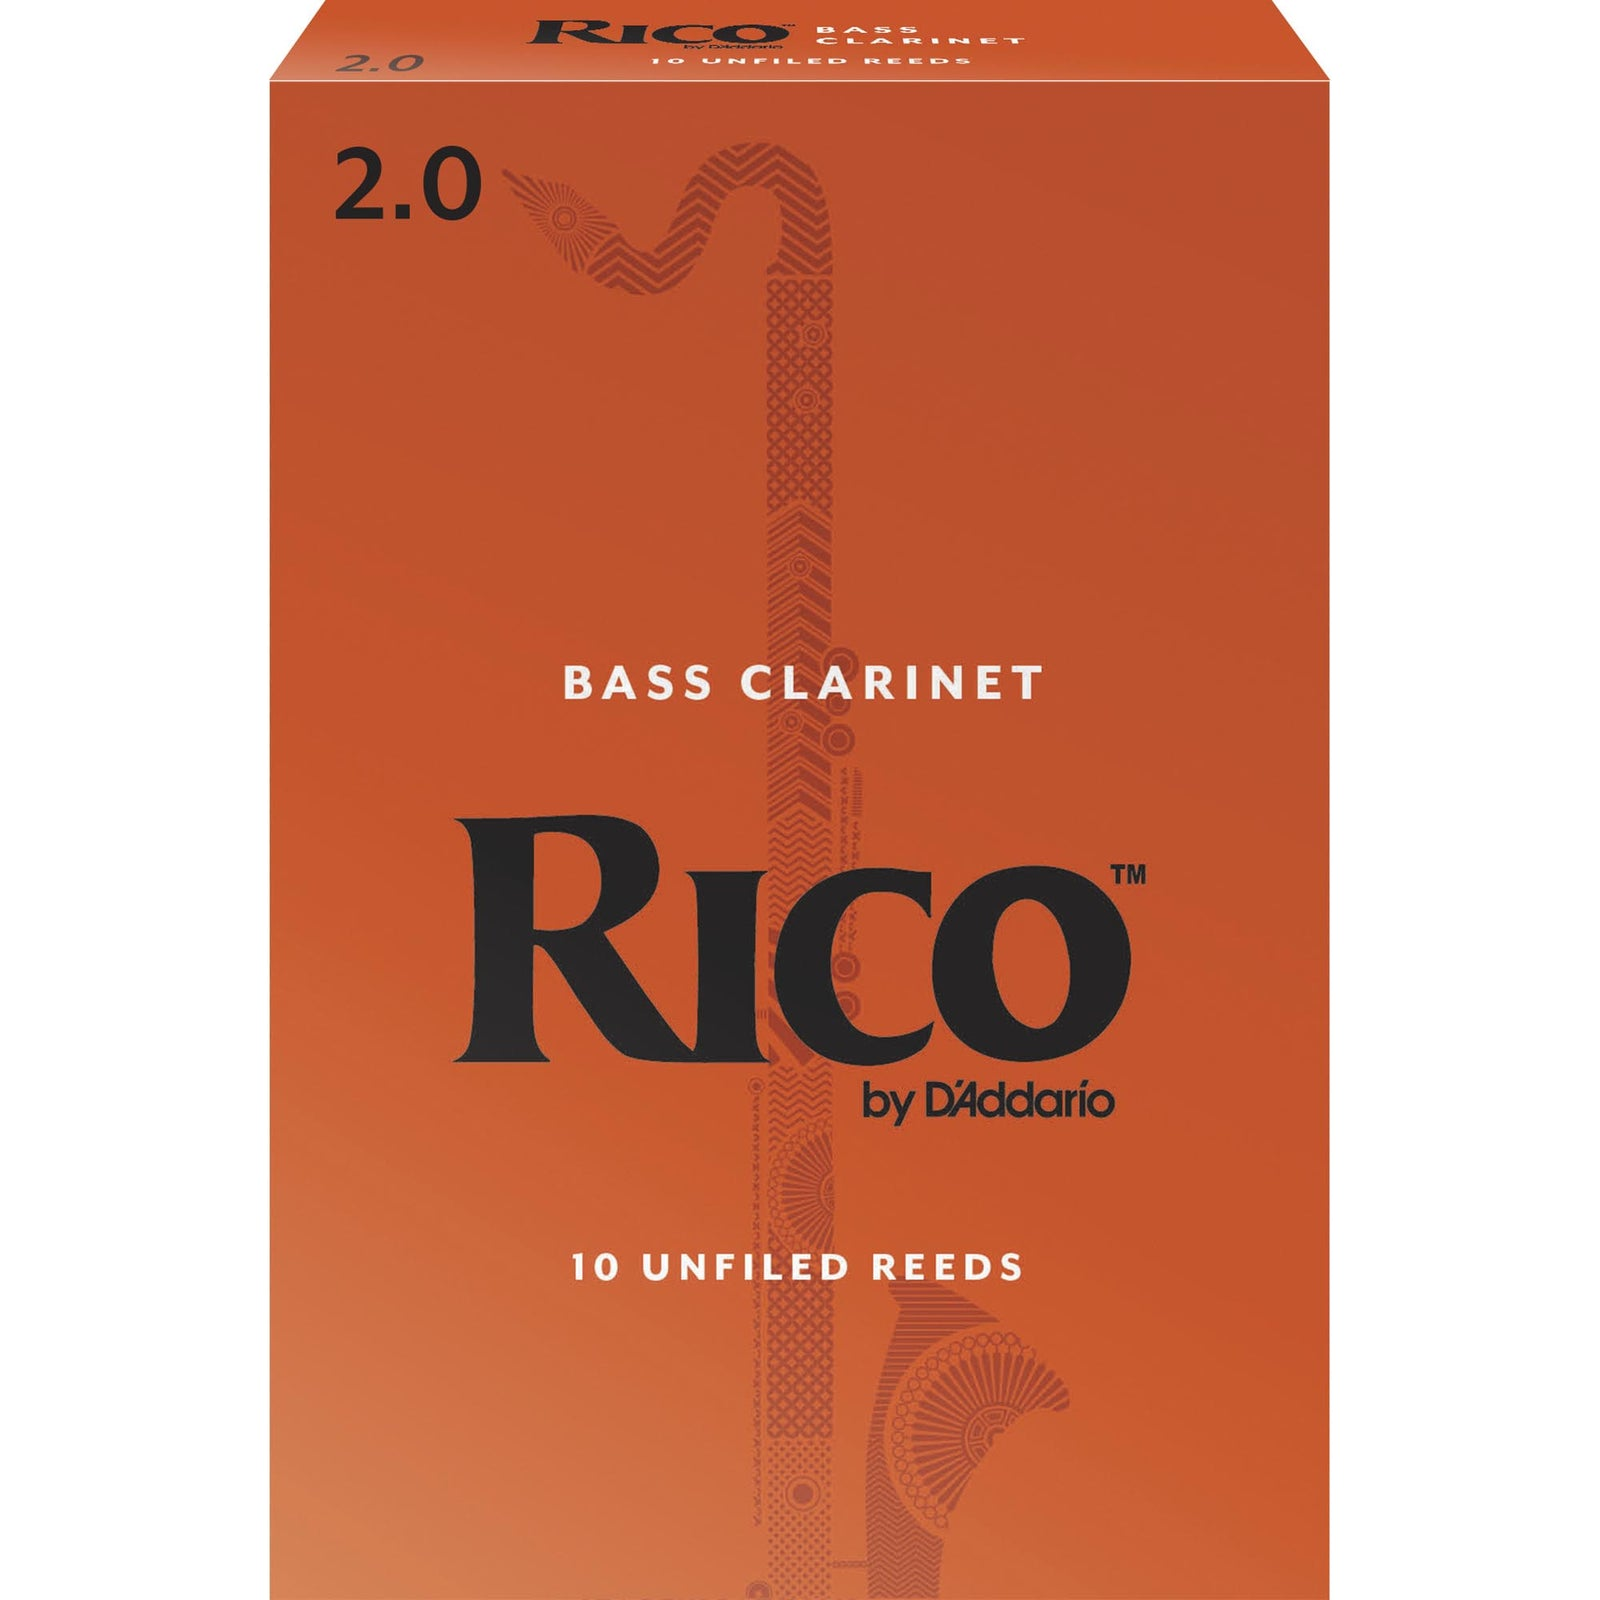 Rico by D'addario Bass Clarinet Reeds (10 Box)